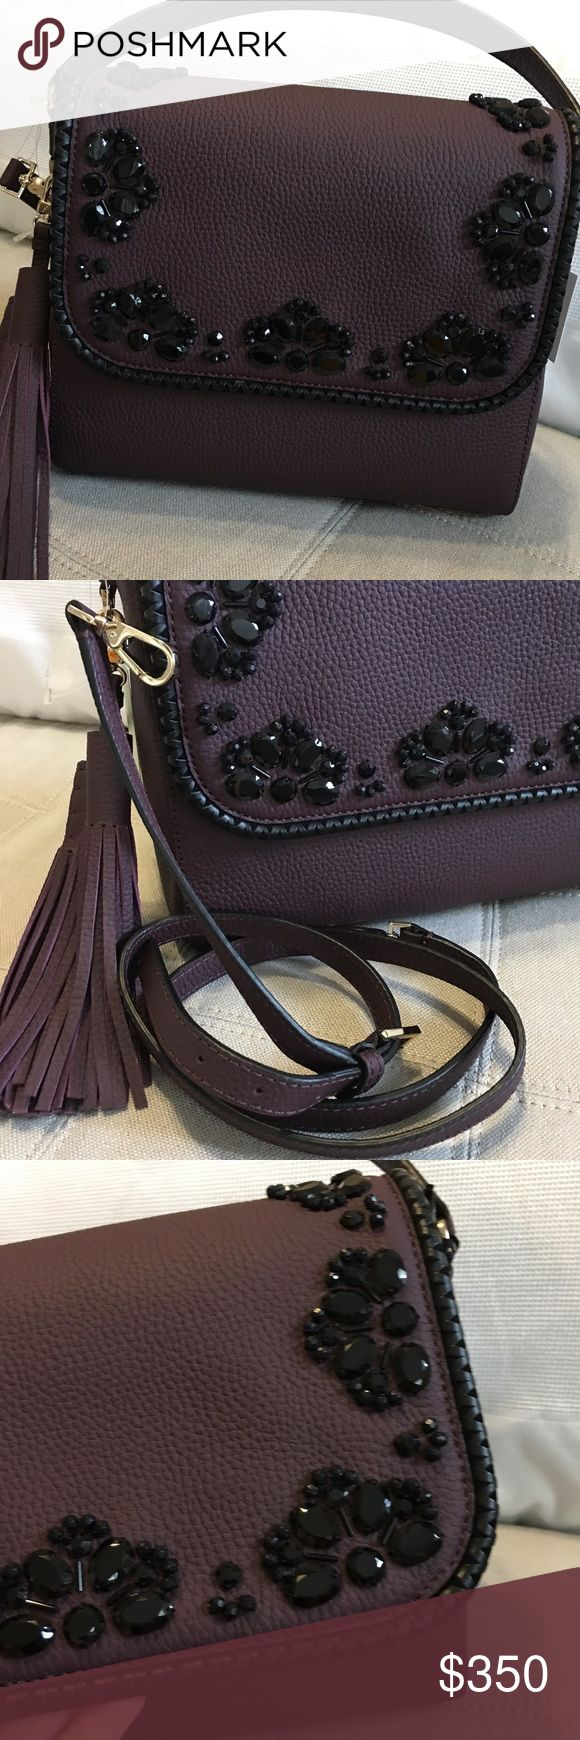 "NWT Kate Spade - Anderson Way Coralie Handbag Brand New with tags! Kate Spade ""Anderson Way"" Coralie and the name of the color is Mahogany! It's a deep purple plum color! Beautiful and stunning color with black stones on the front 💕. Comes with detachable strap to make it a Crossbody and strap is adjustable as well! Price is definitely negotiable and I'm always open to all offers. Measurements: 9.5 inches tall, 11 inches wide, 5 inches deep. kate spade Bags"